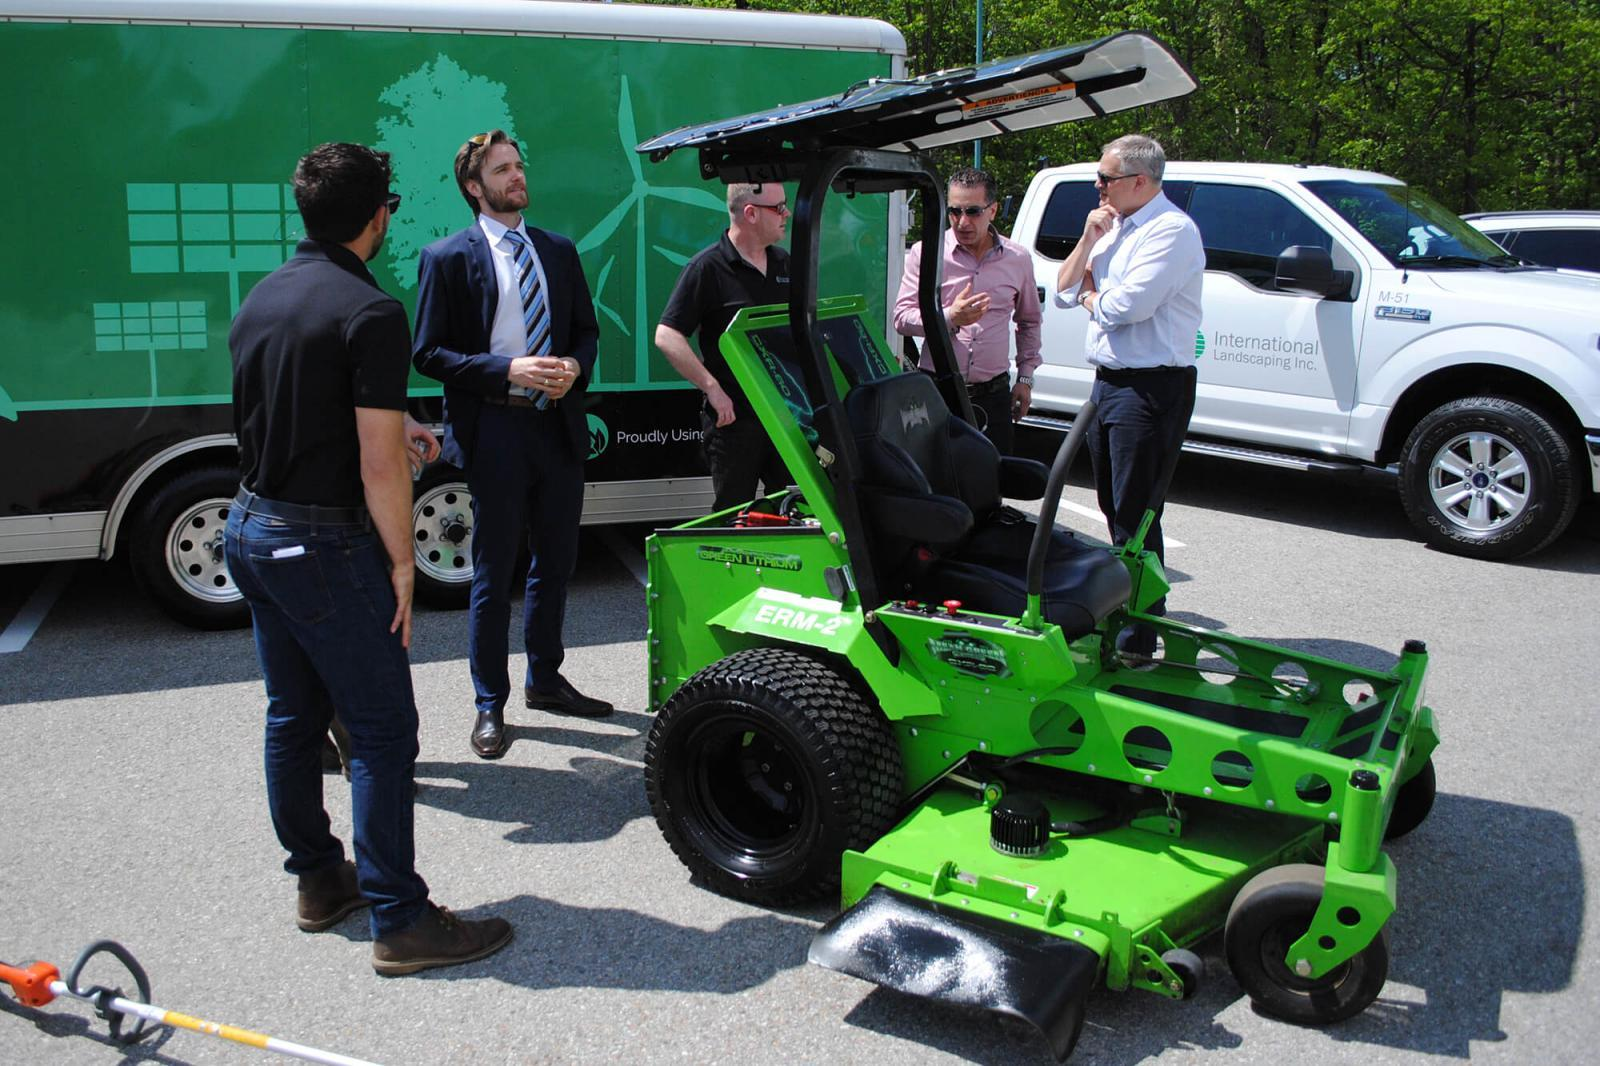 International Landscaping adds HP campus to electric maintenance portfolio